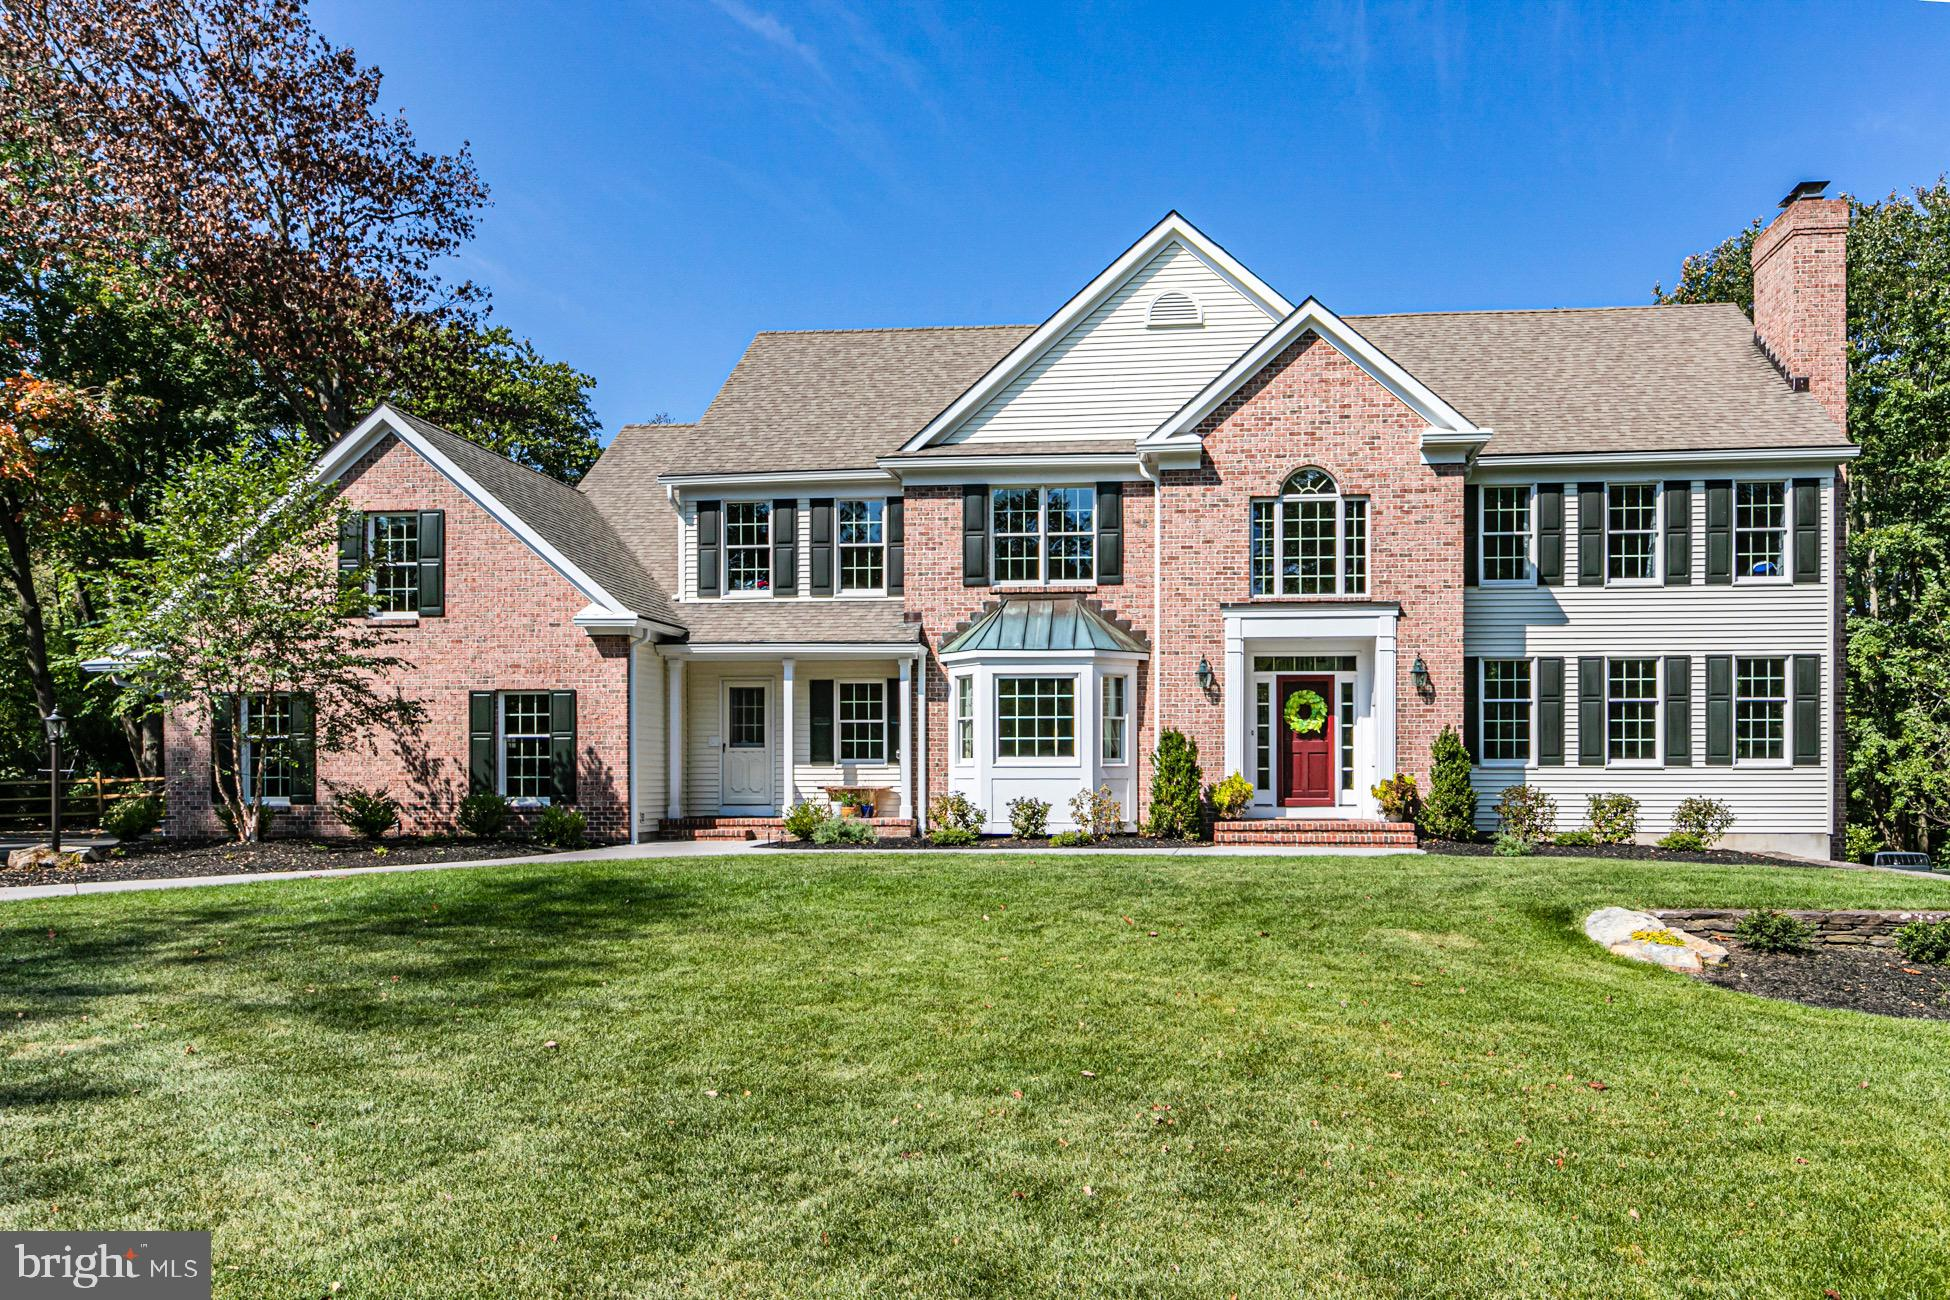 2 WOODLAWN LANE, PENNINGTON, NJ 08534